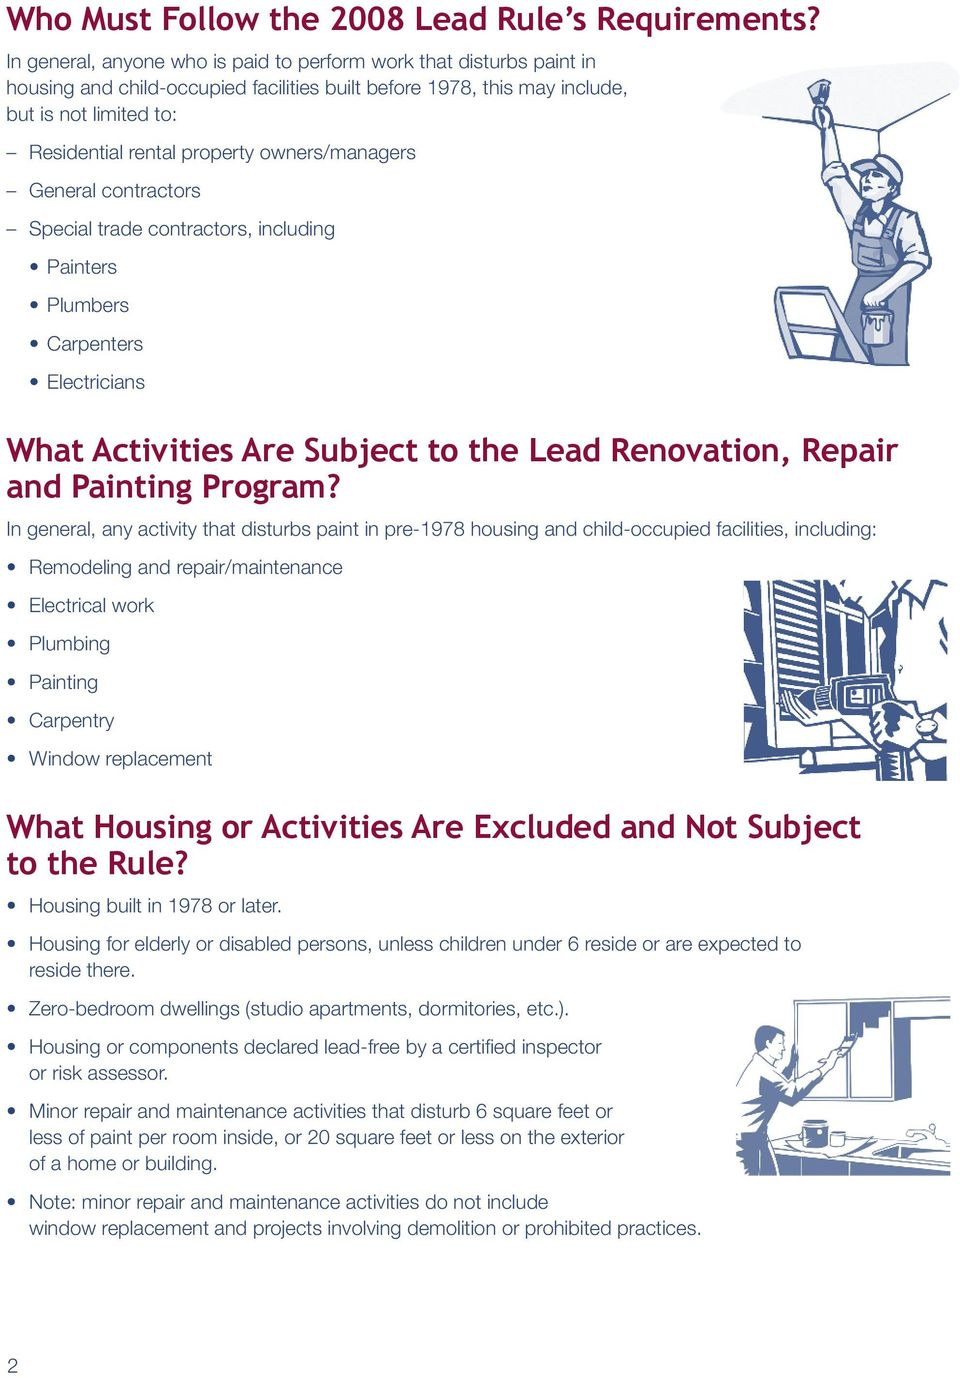 owners/managers General contractors Special trade contractors, including Painters Plumbers Carpenters Electricians What Activities Are Subject to the Lead Renovation, Repair and Painting Program?